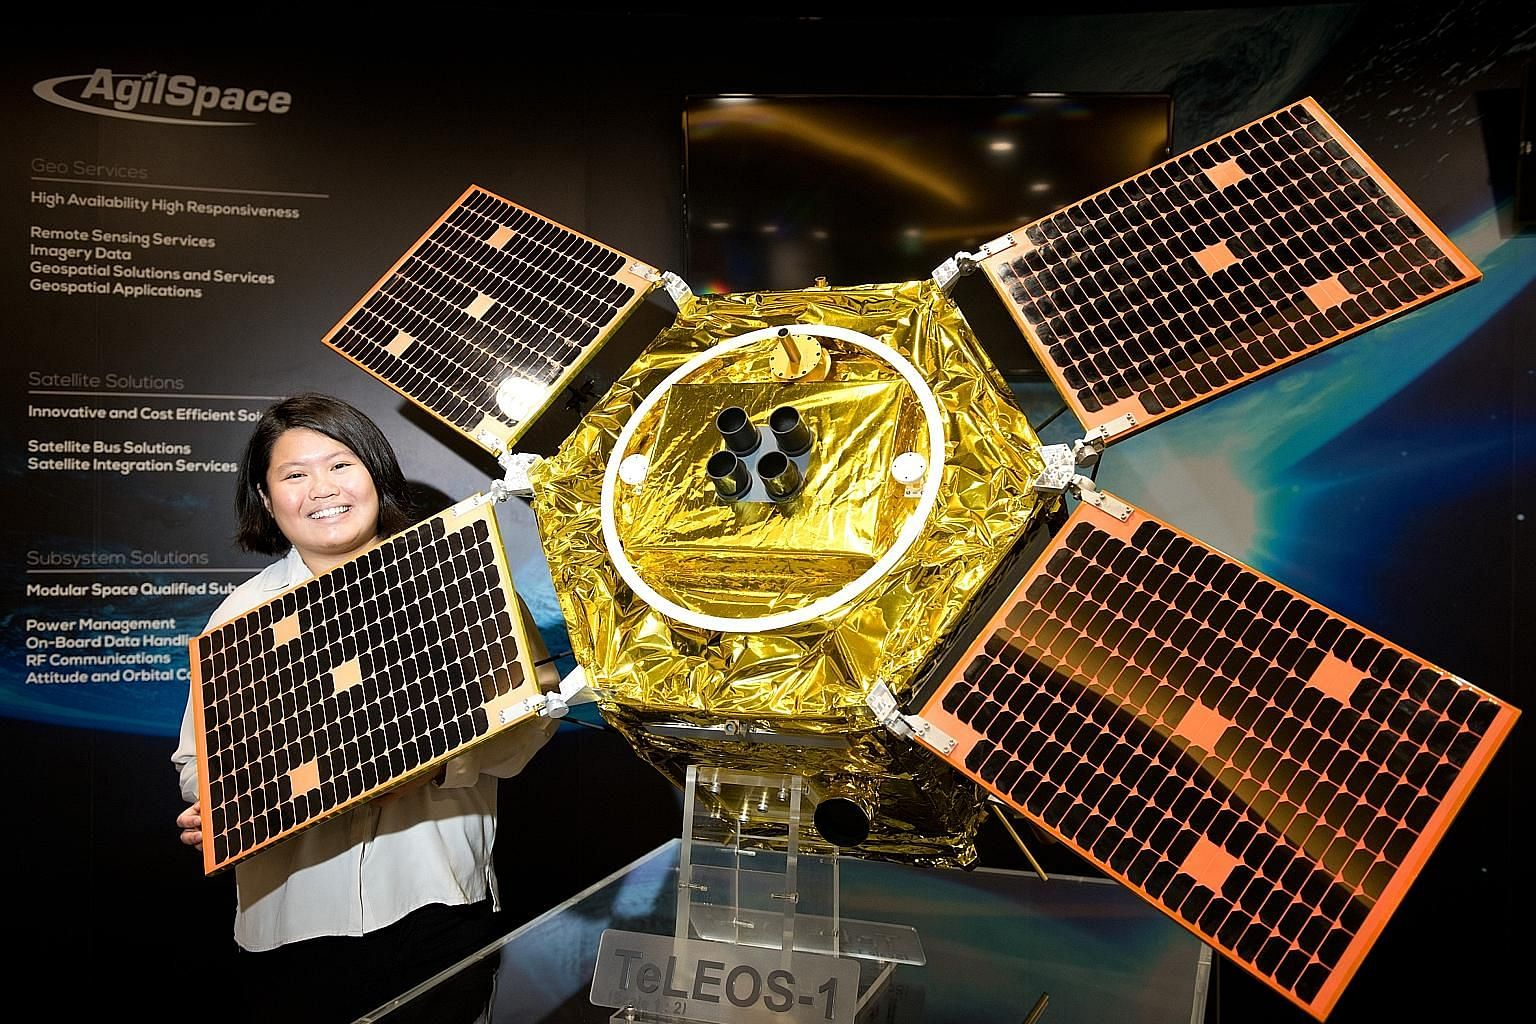 ST Engineering's TeLEOS-1 satellite. The company had a busy year, making history with the successful launch of Singapore's first commercial earth observation satellite in December last year.